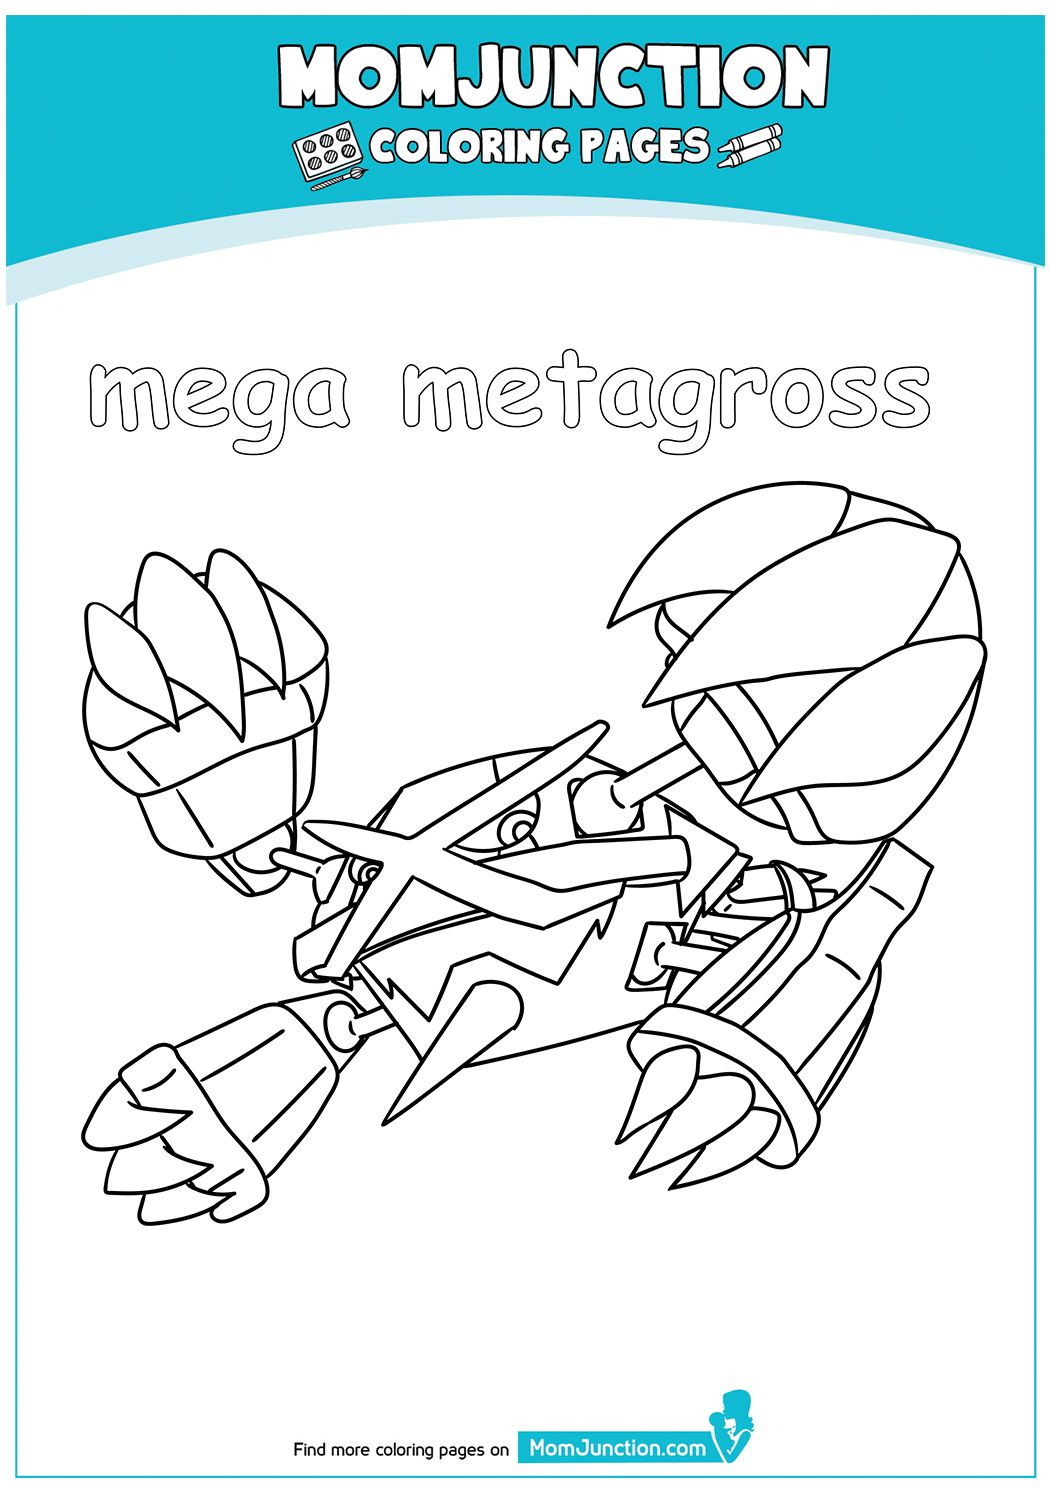 Pokemon Go Logo Coloring Page | Coloring pages, Color, Go logo